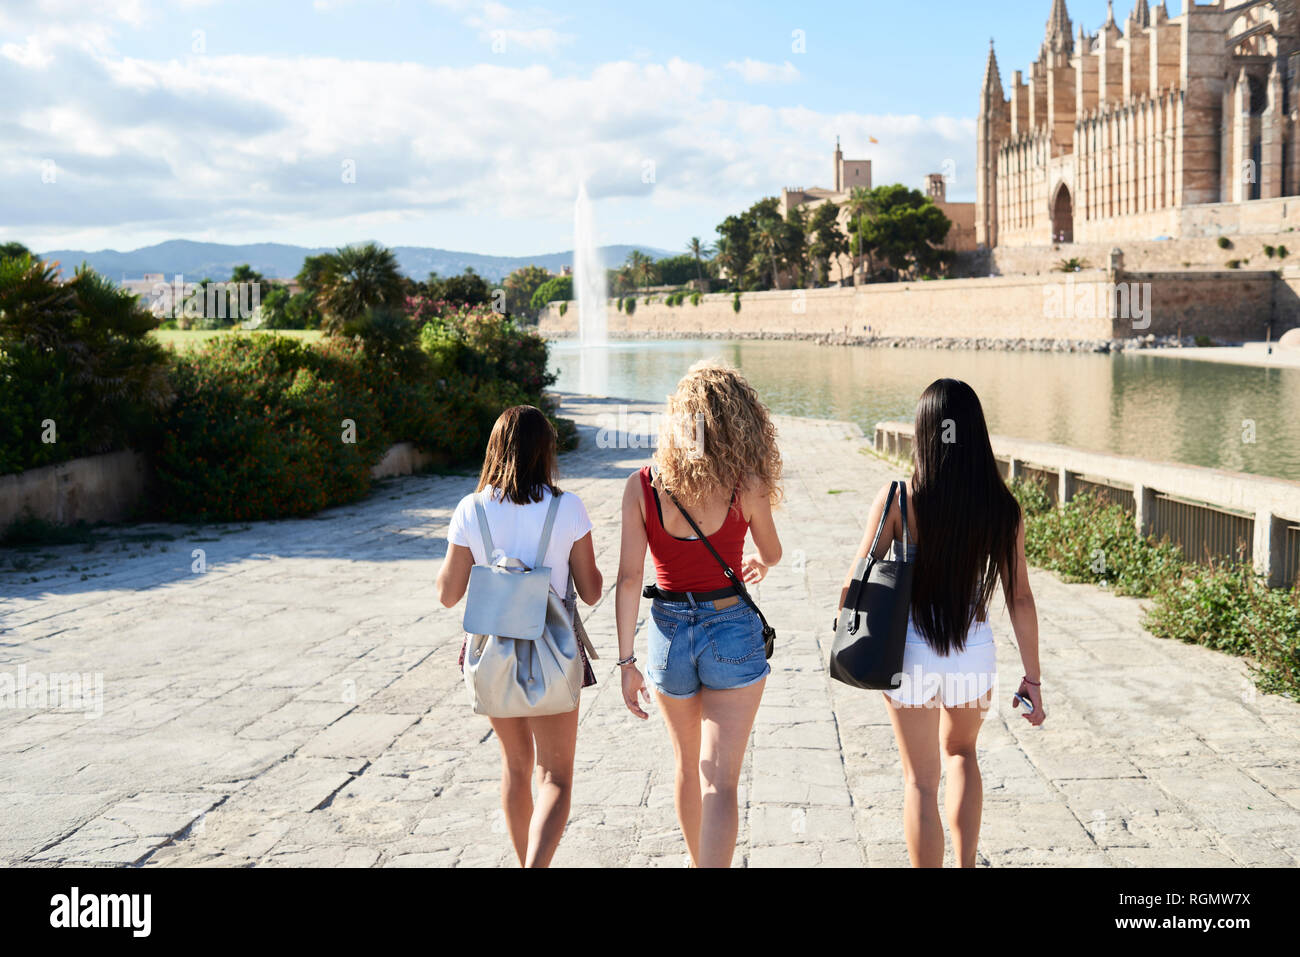 Spain, Mallorca, Palma, rear view of three young women exploring in the city - Stock Image